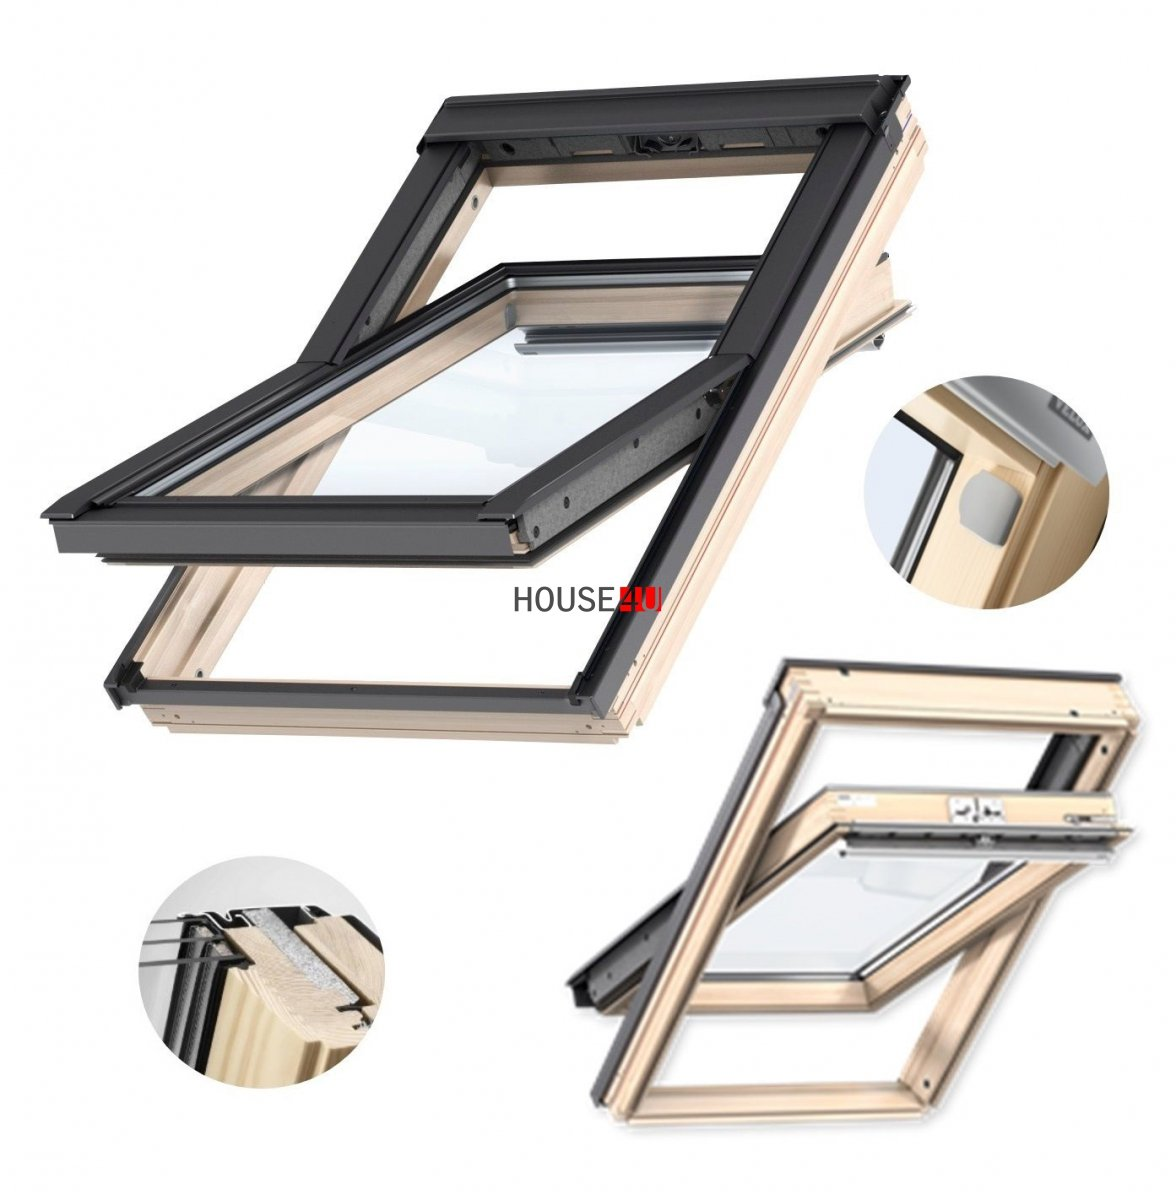 velux dachfenster gll 1061 3 fach verglasung uw 1 1 schwingfenster aus holz mit dauerl ftung. Black Bedroom Furniture Sets. Home Design Ideas